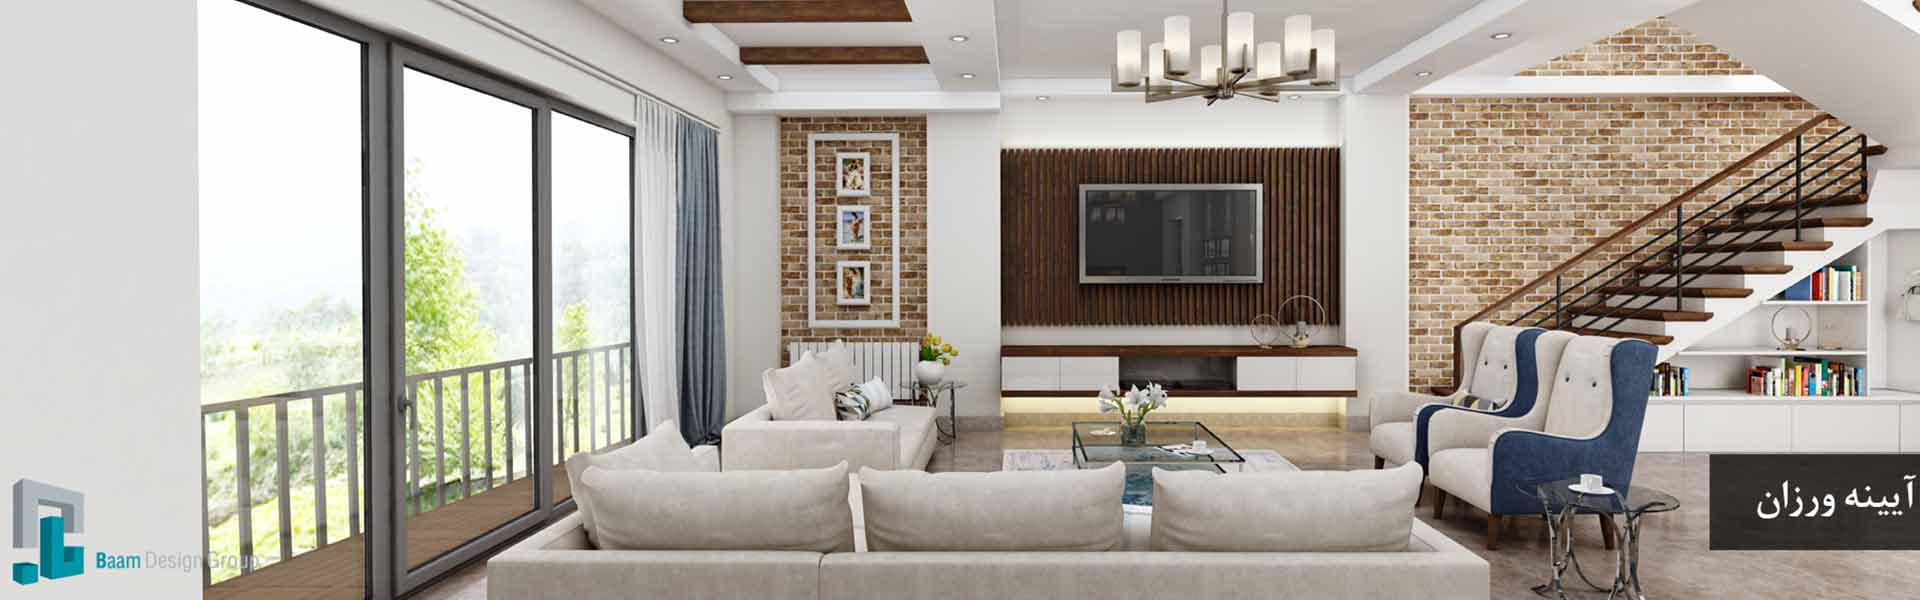 Interior decorations design